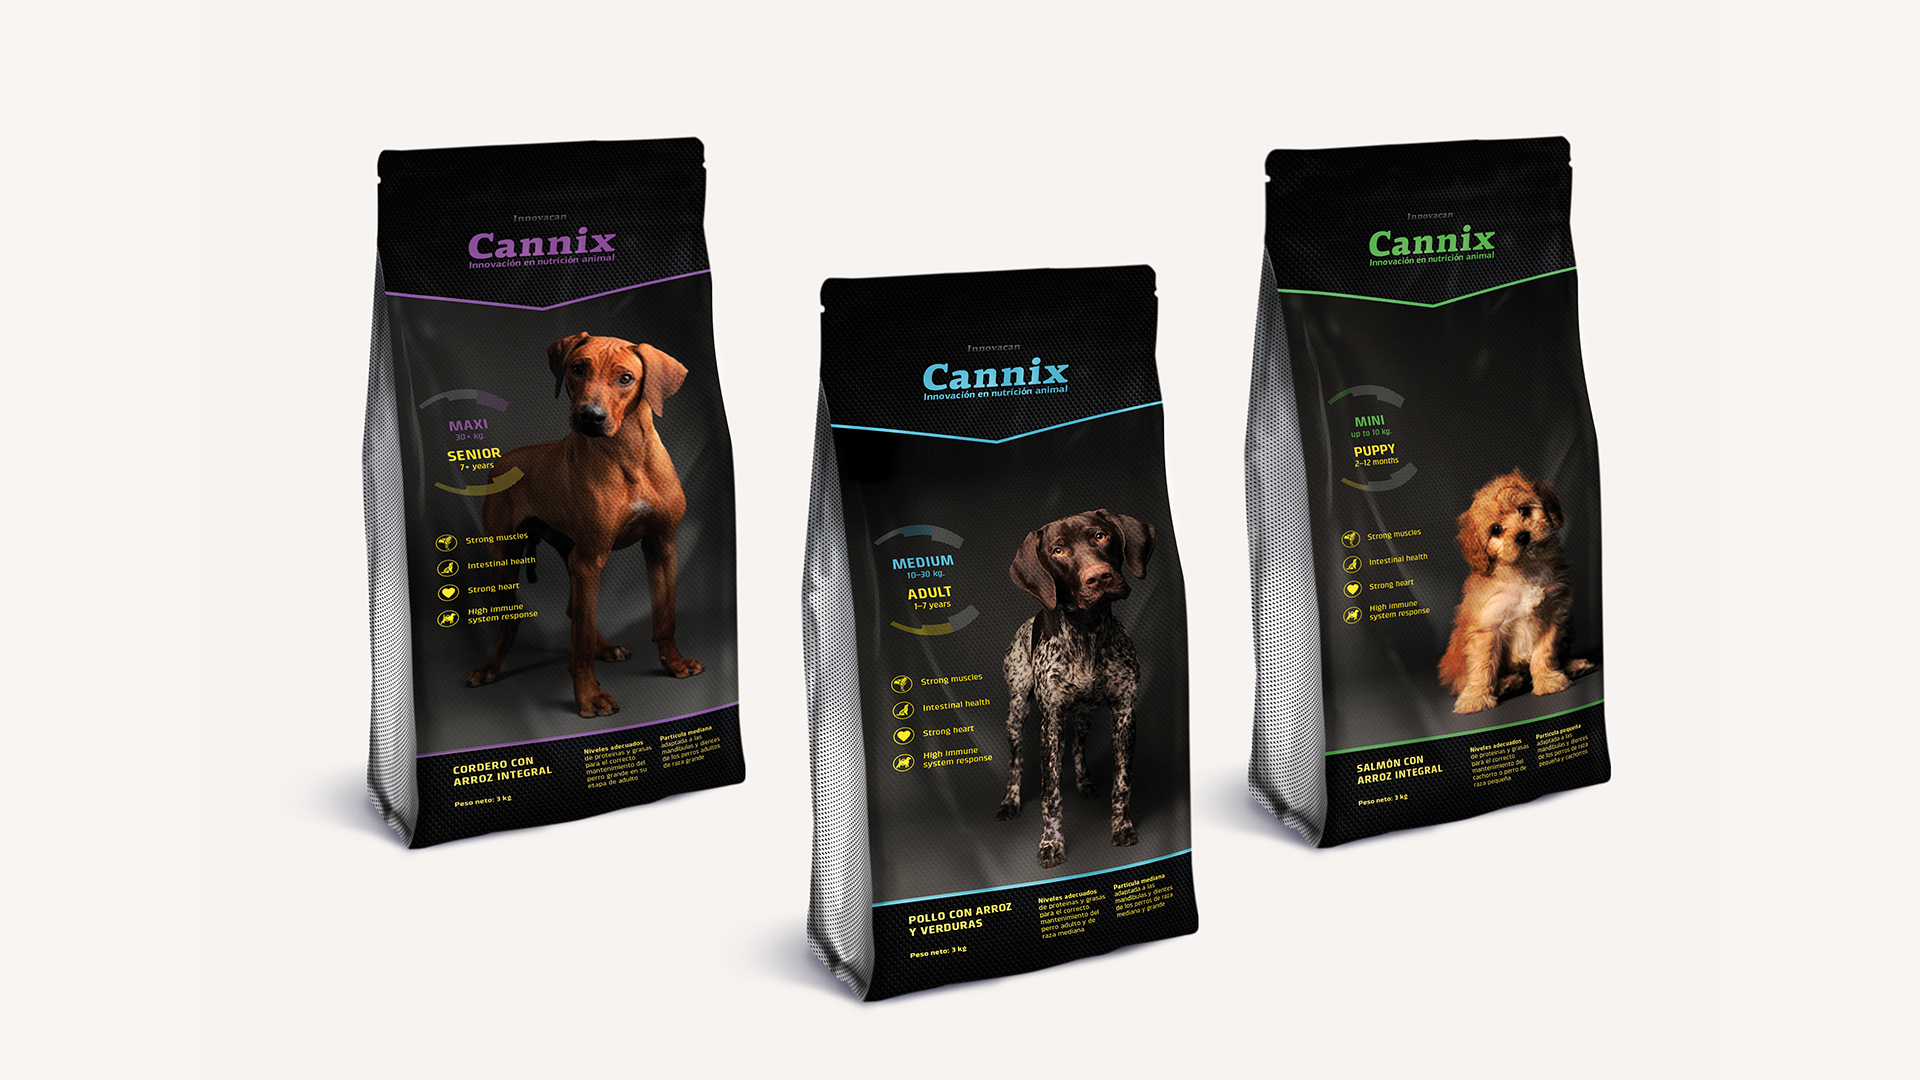 Identity and packaging for Cannix dog food by FUERA